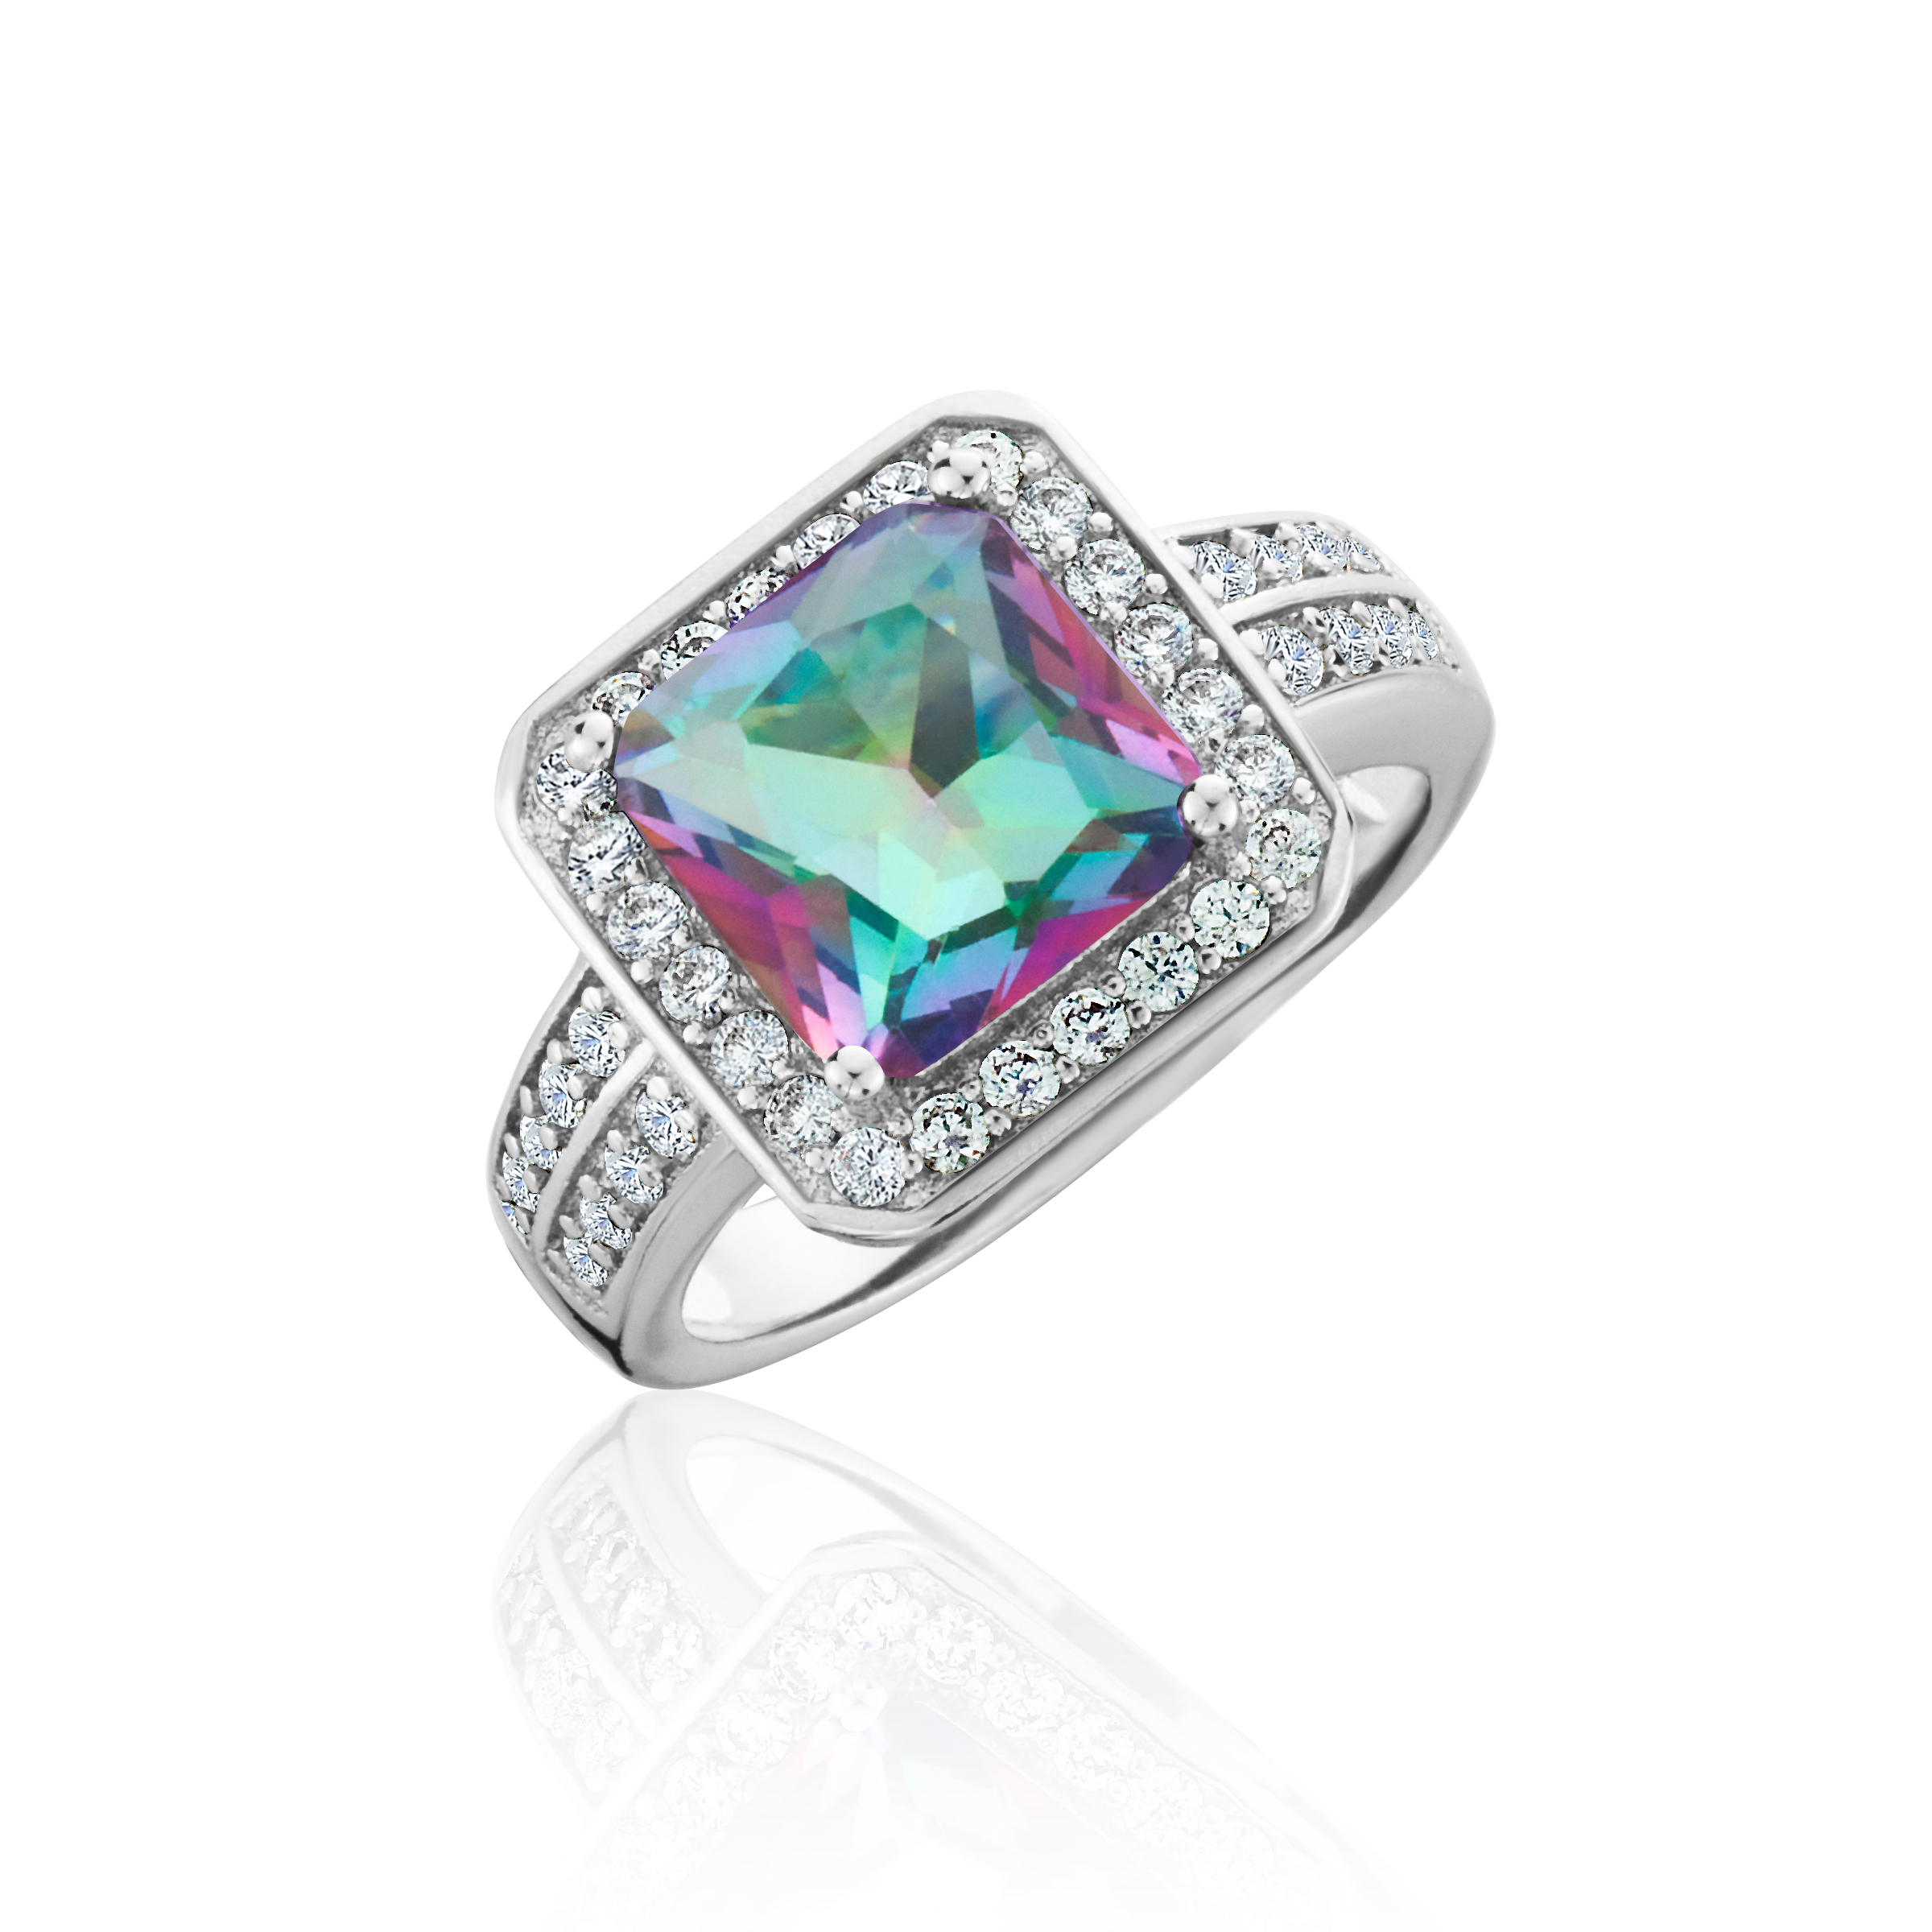 Mystic Quartz w  CZ Accents Princess-Cut Ring in 18K White Gold Over B 79d6485f5711